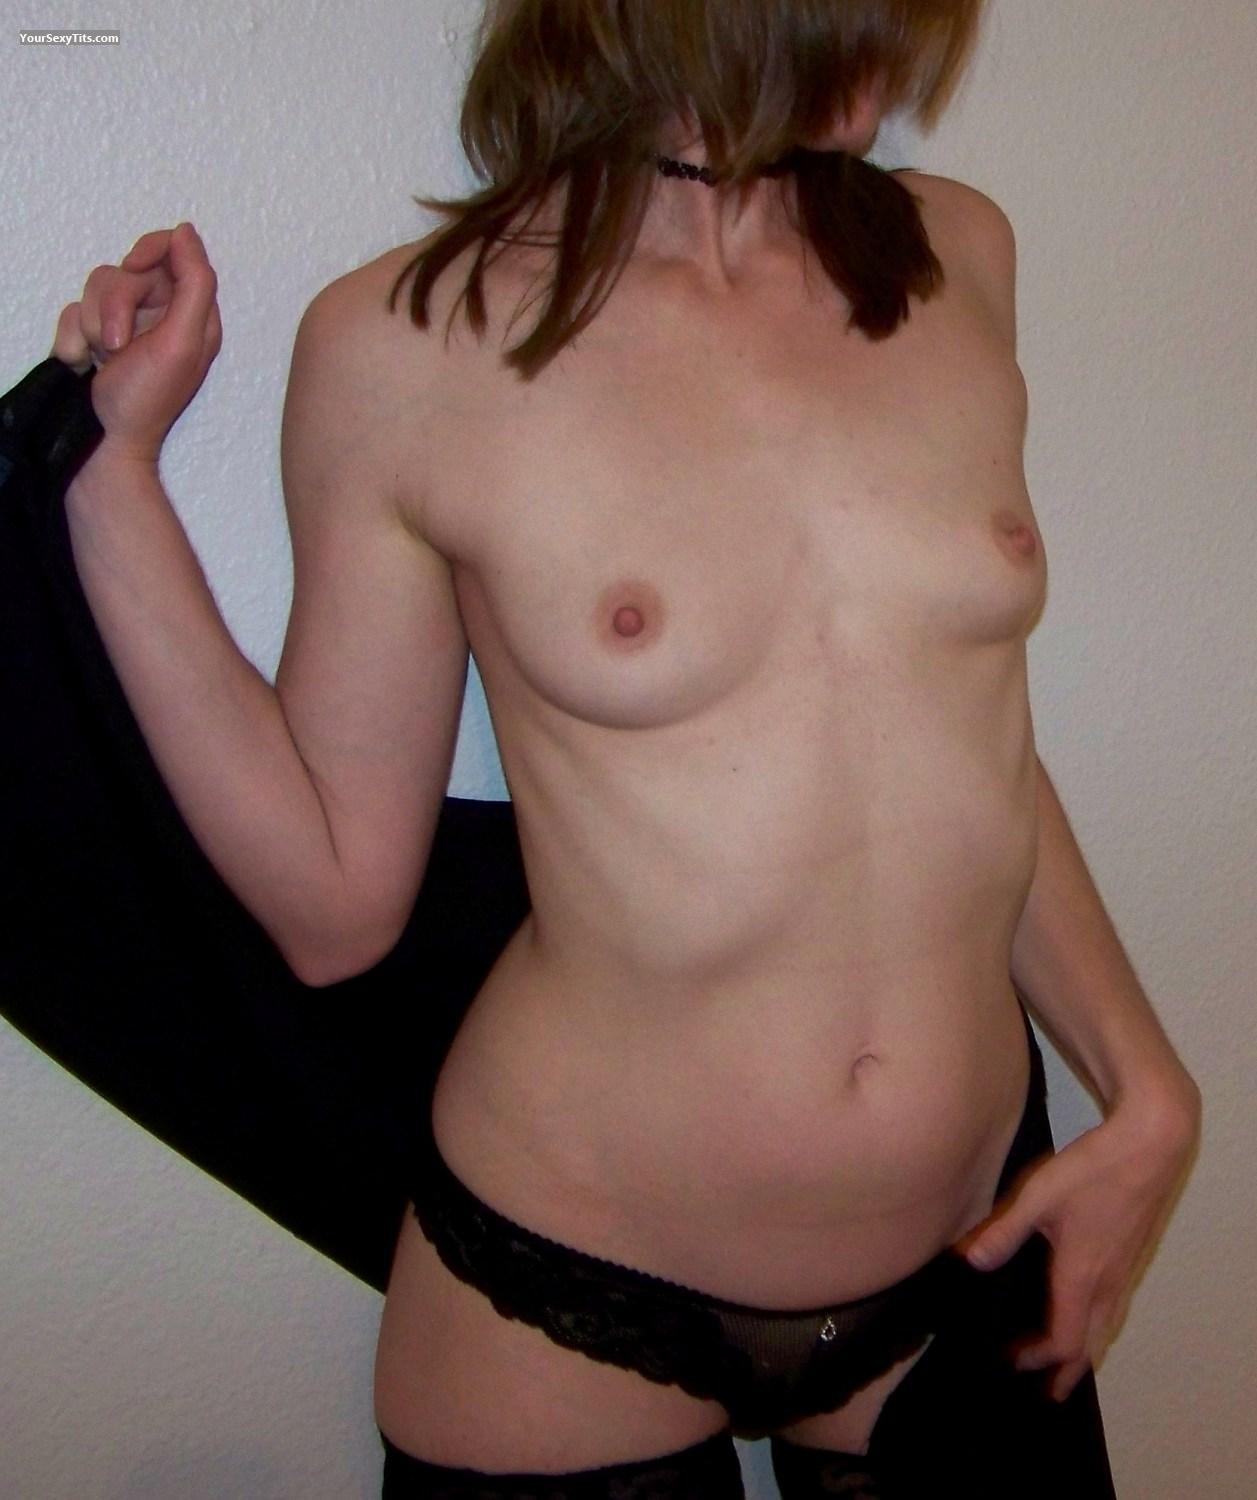 Very small Tits Shy And Sexy